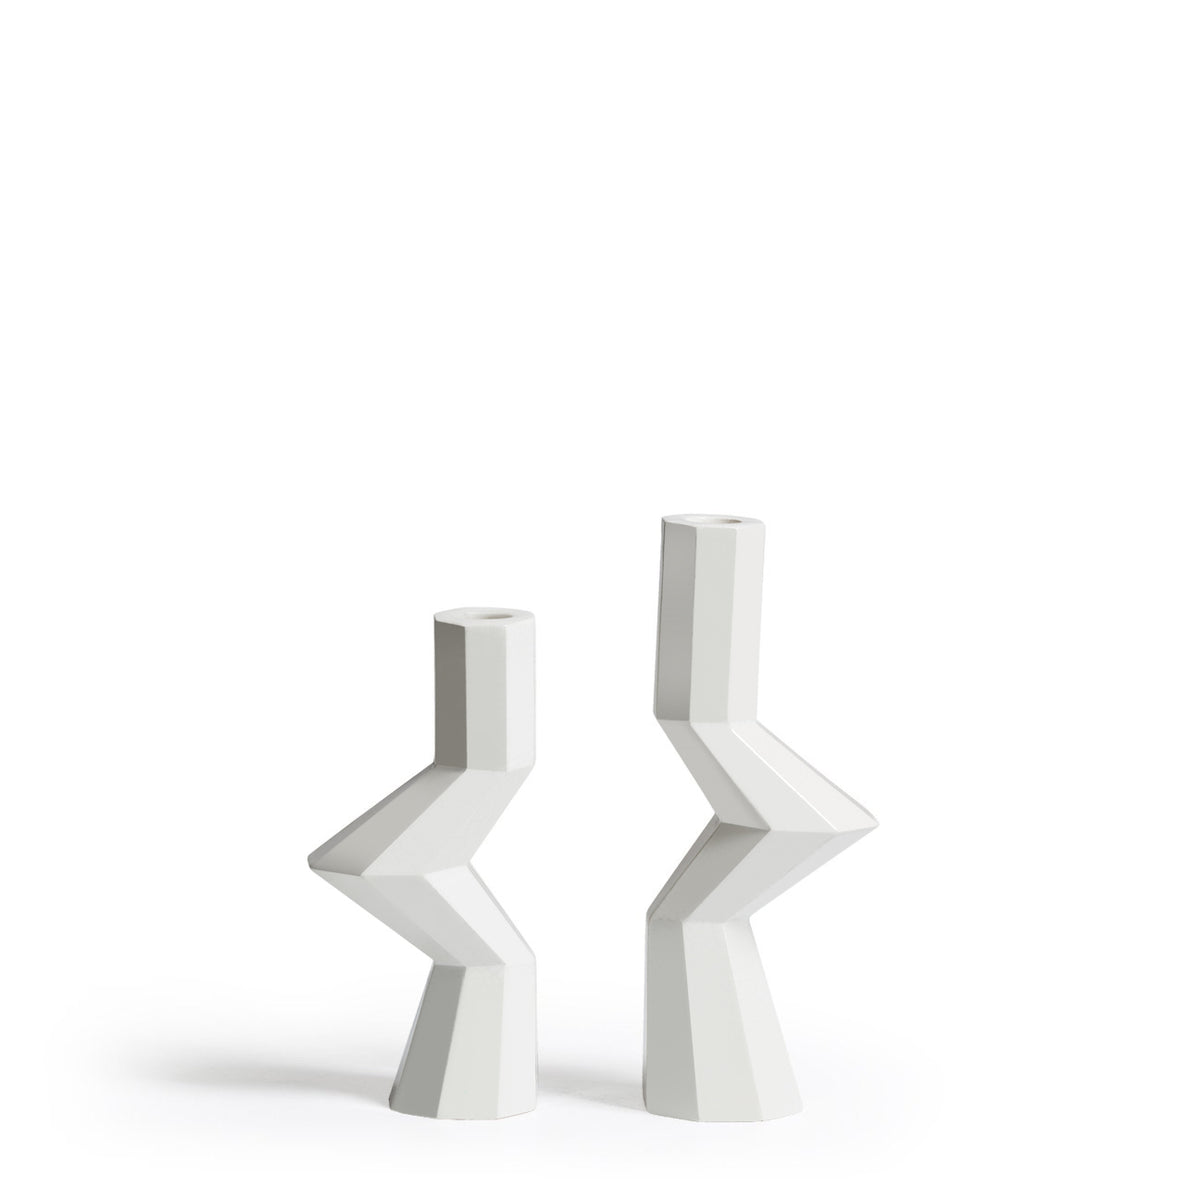 FORTRESS MILITIA CANDLE HOLDERS - WHITE